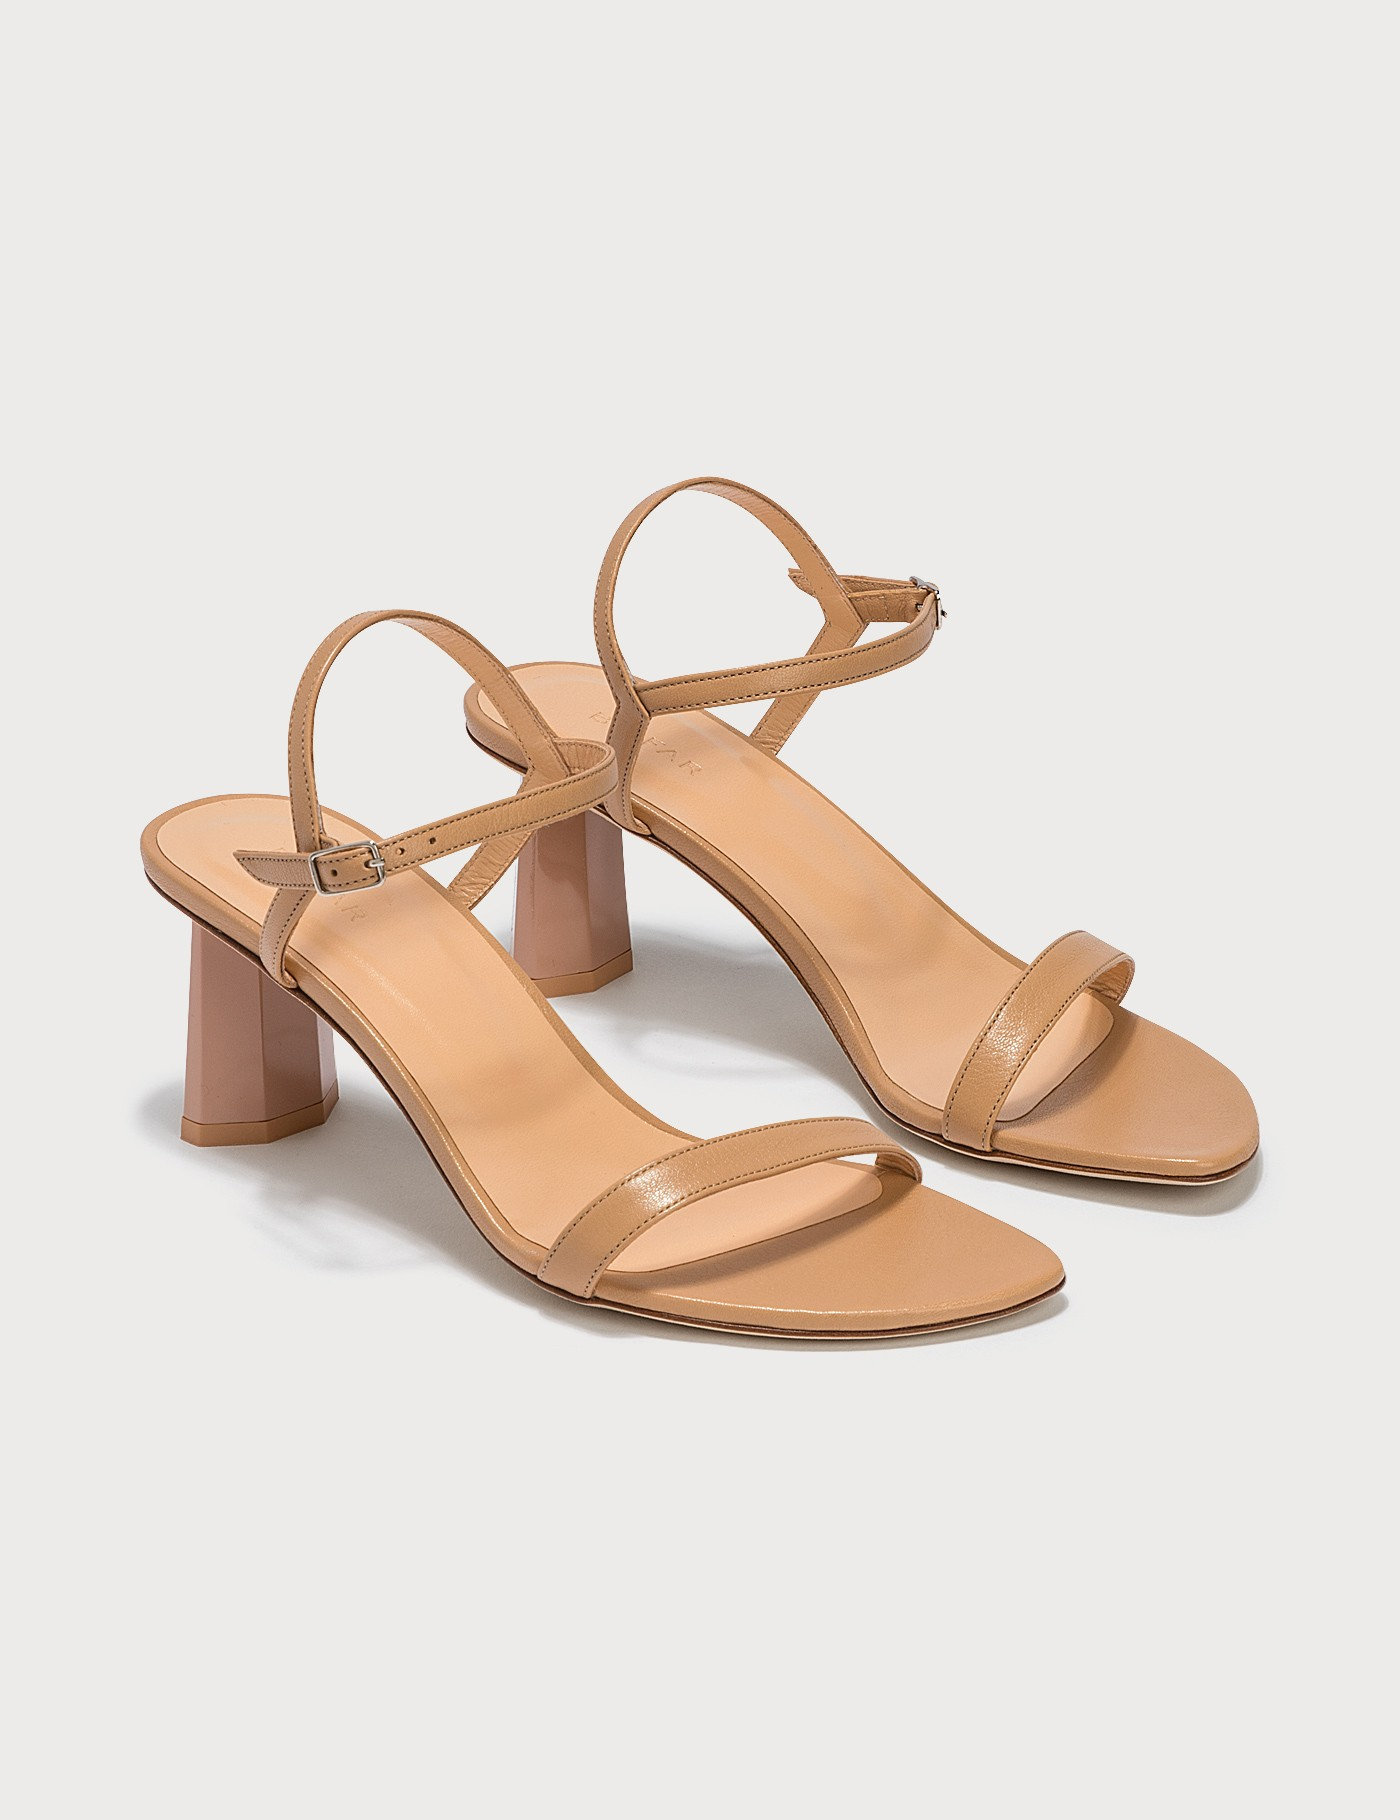 Magnolia Nude Ostrich Embossed Leather Sandals